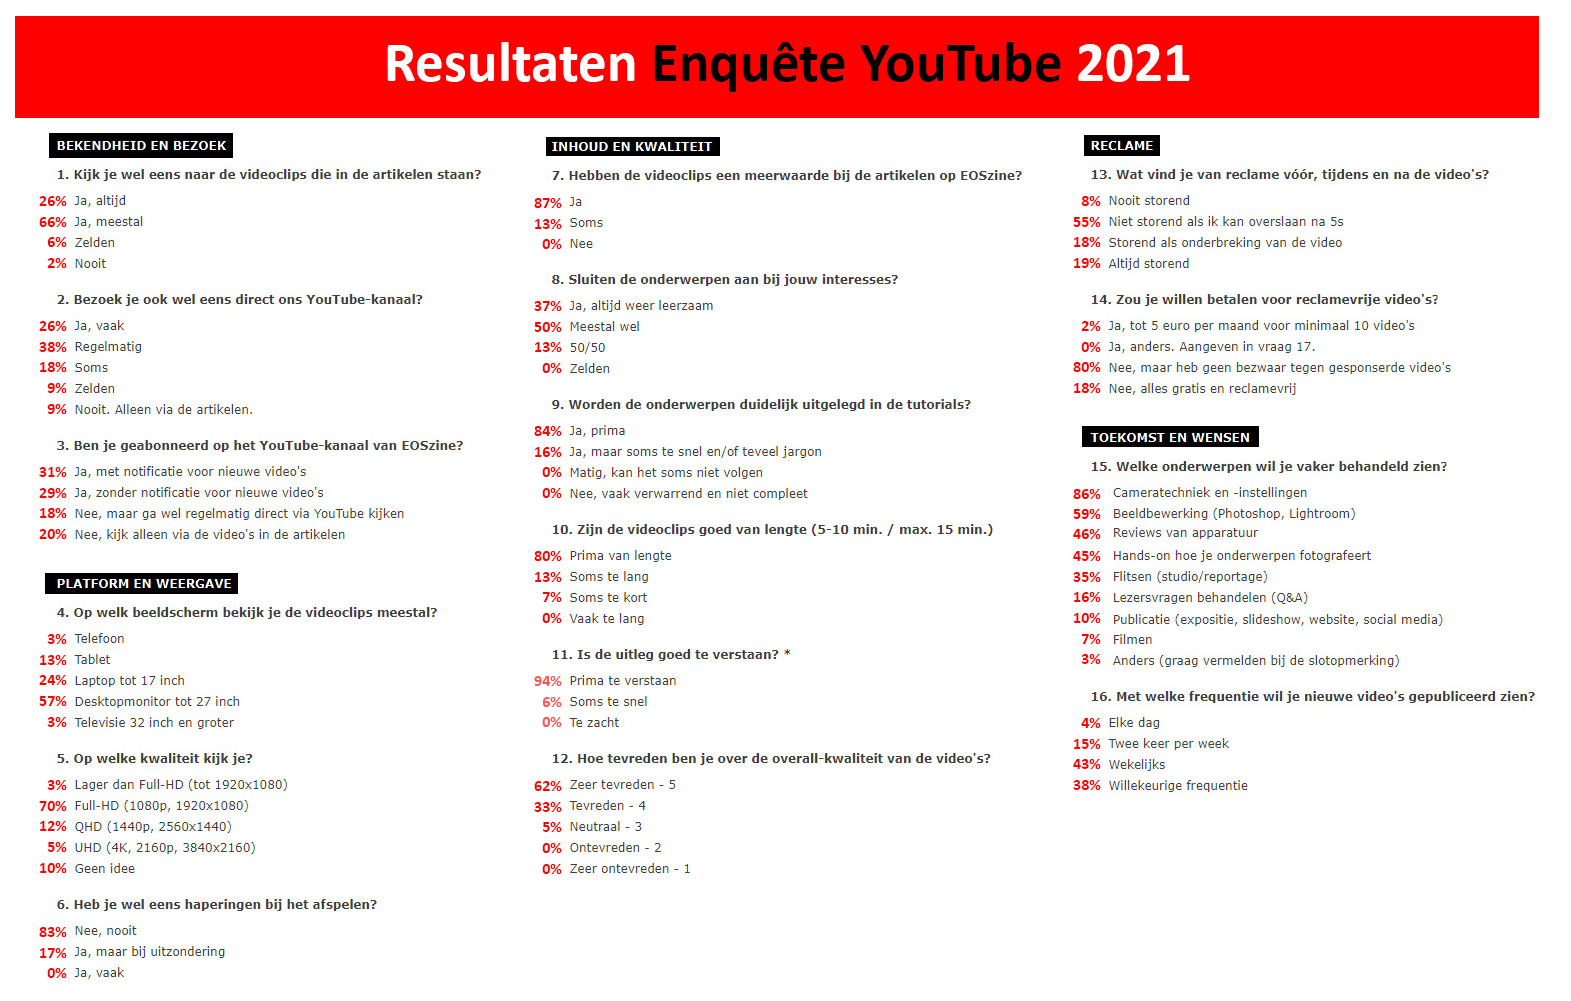 Resultaat enquete YouTube 2021